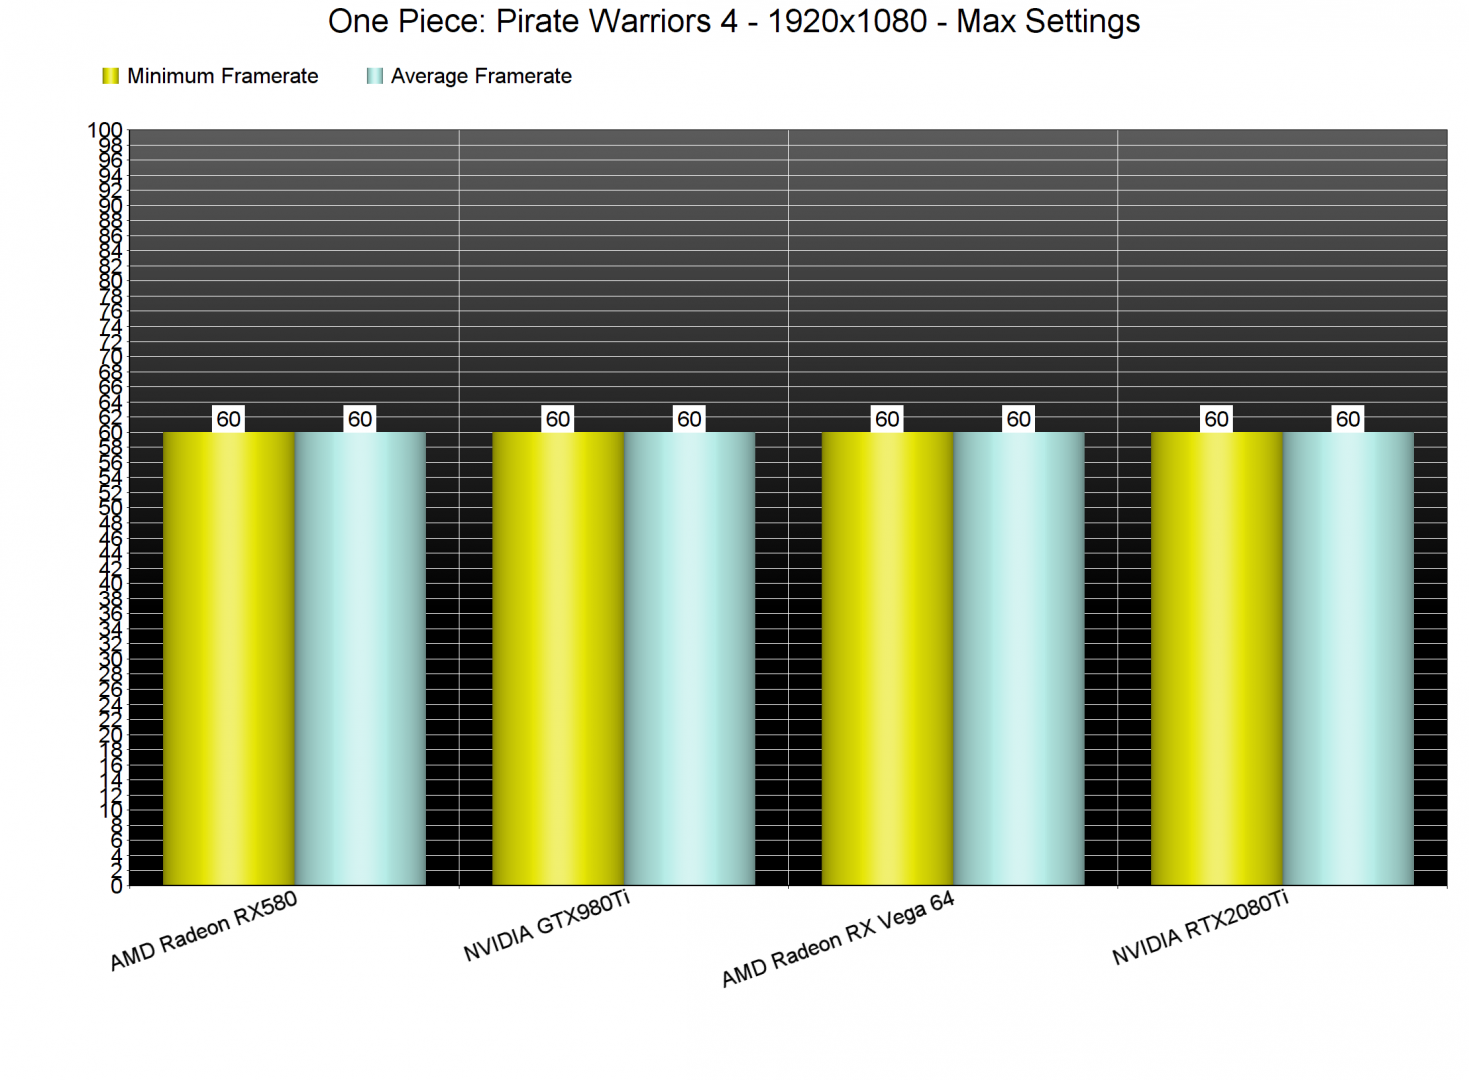 One Piece Pirate Warriors 4 benchmarks-2